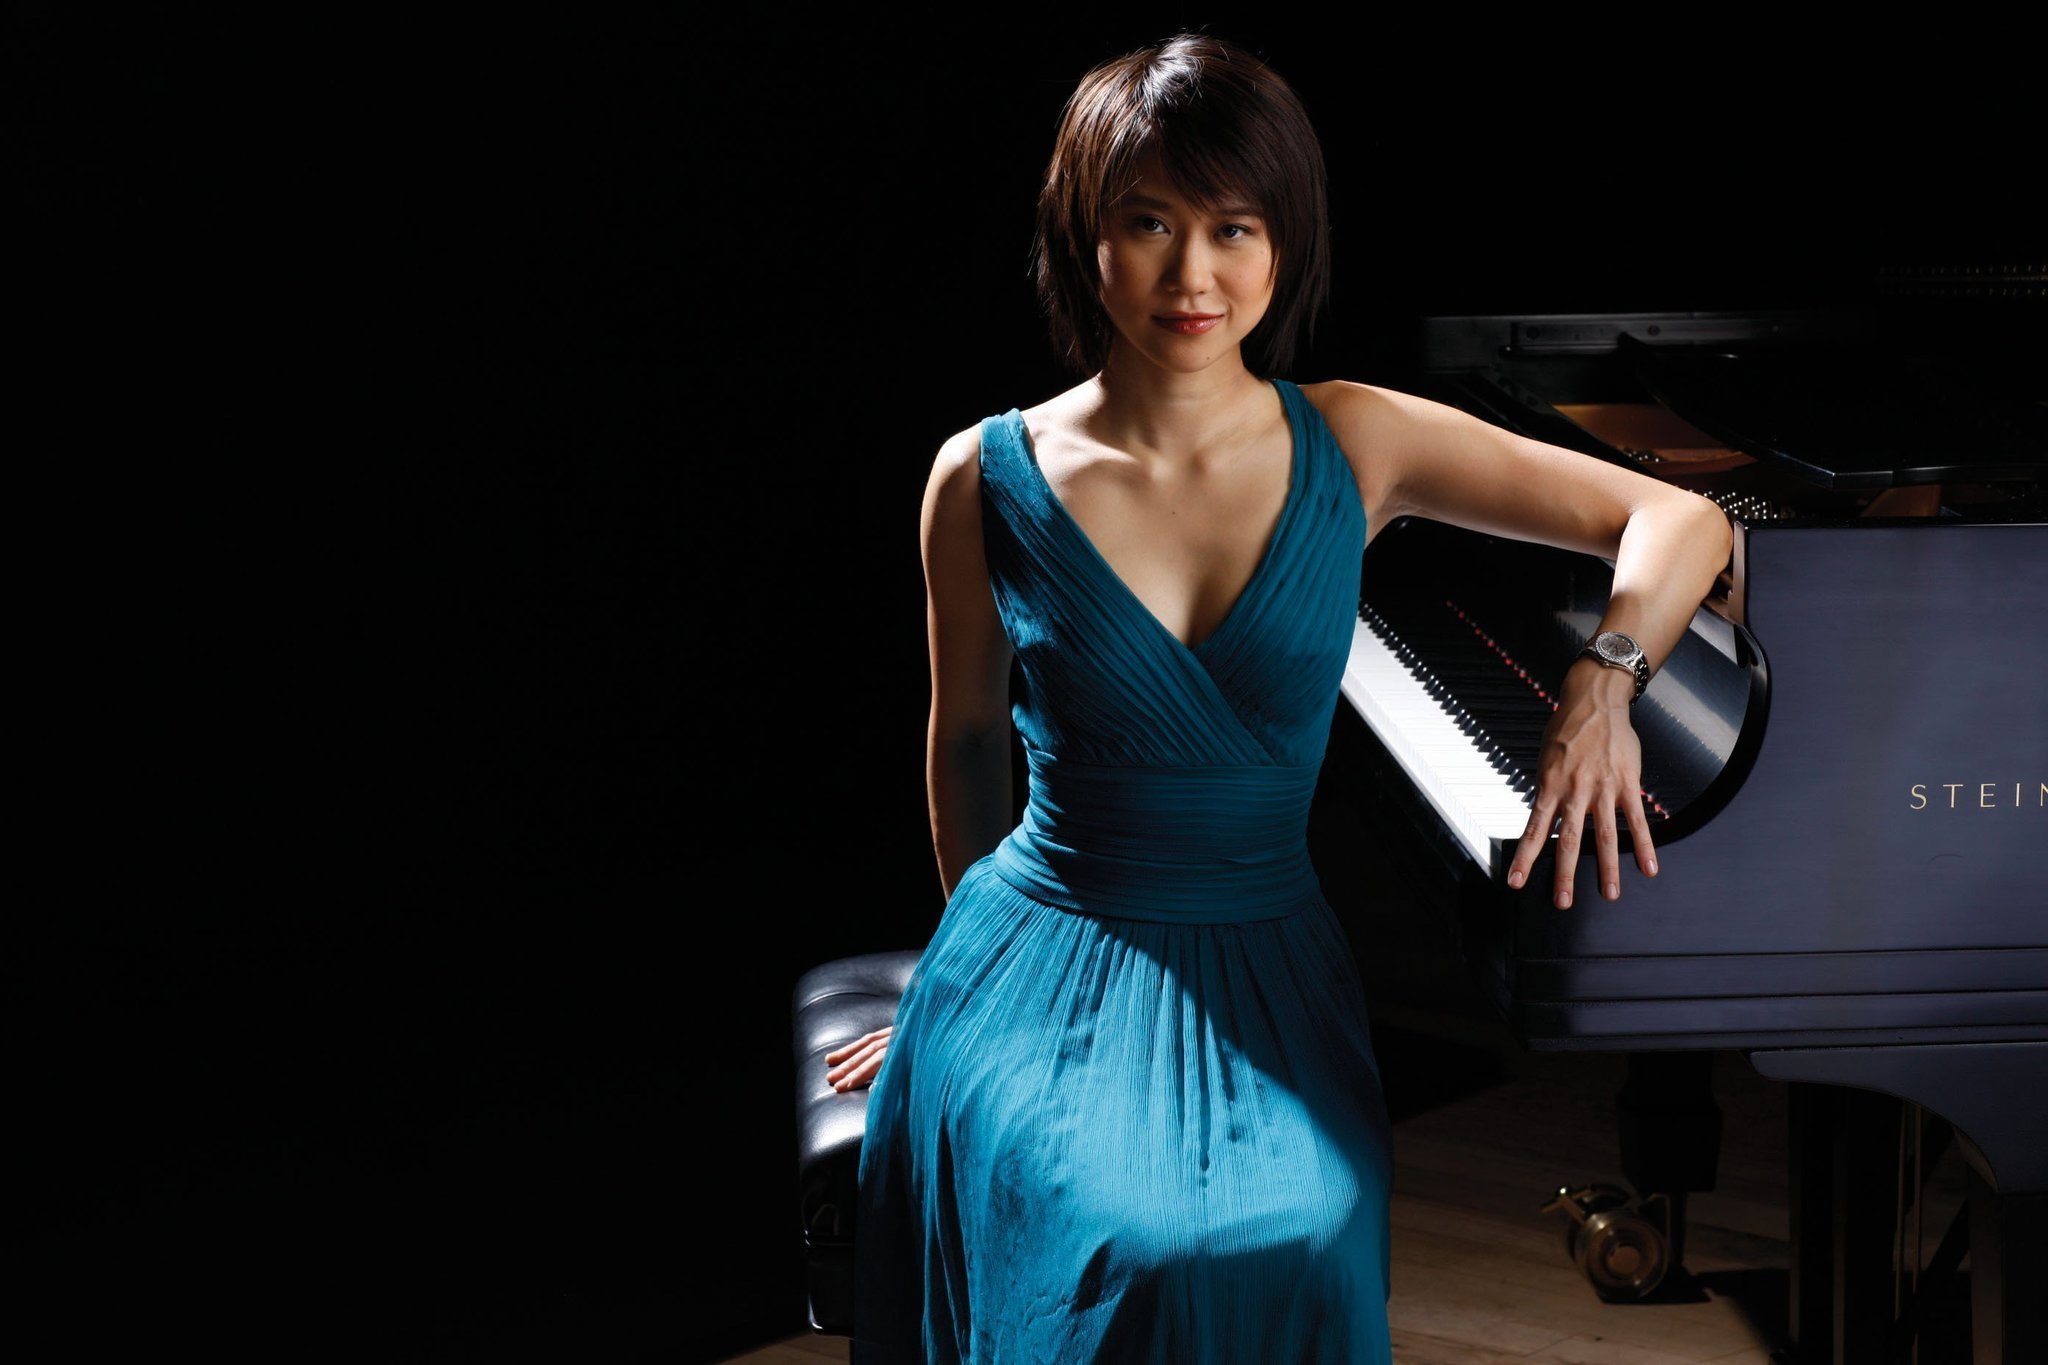 a review of the rachmaninoffs piano concerto no 2 performed by yuja wang Sergei prokofiev set to work on his piano concerto no 2 in g minor, op 16, in 1912 and completed it in 1913 but this concerto is lost the score was destroyed in a fire following the russian revolution.